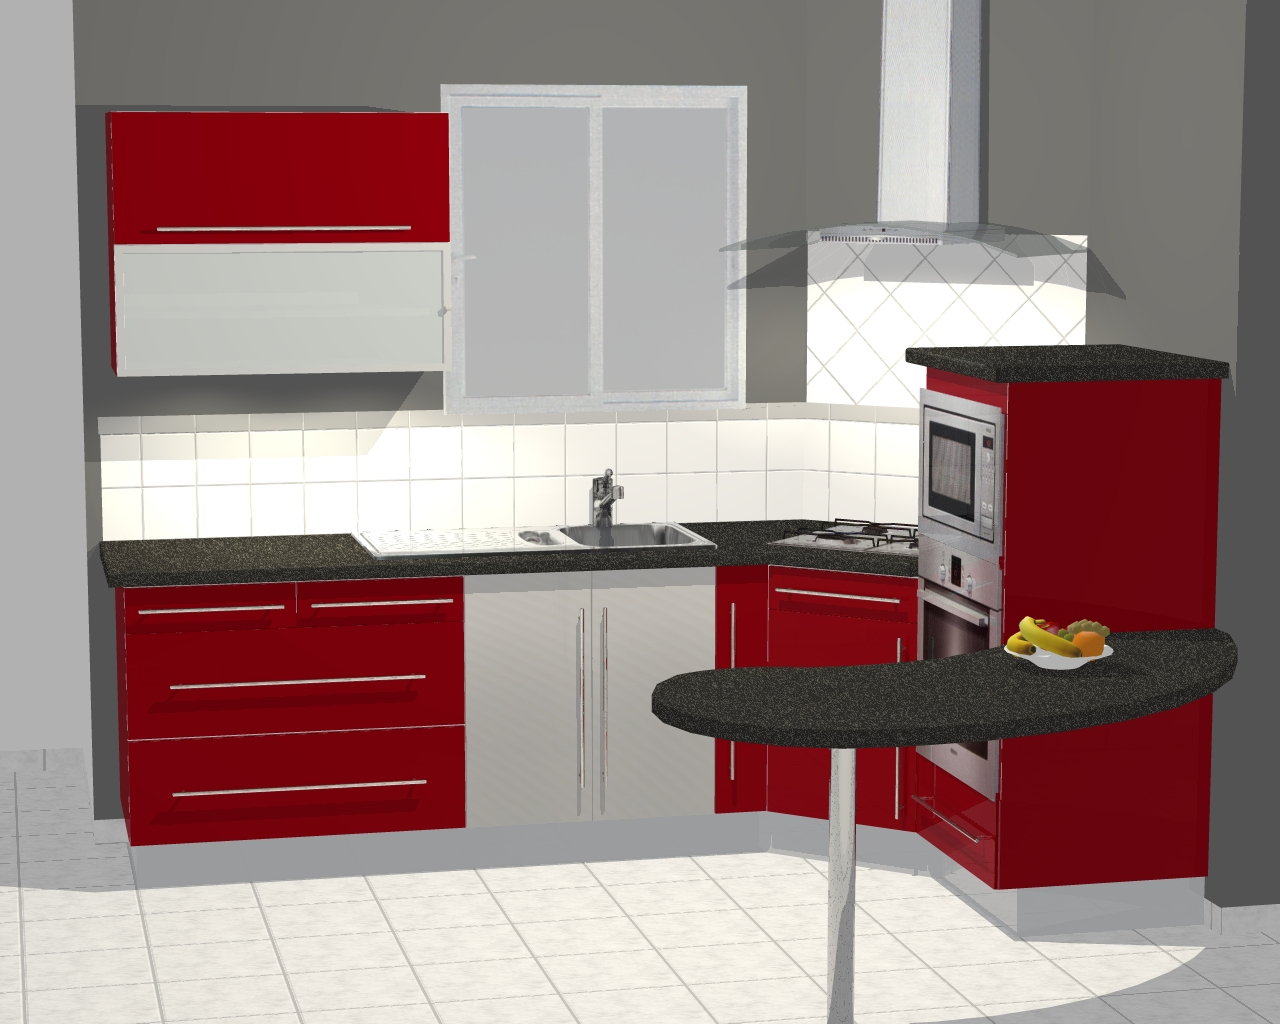 Cuisine conception 3d for Ikea conception cuisine 3d